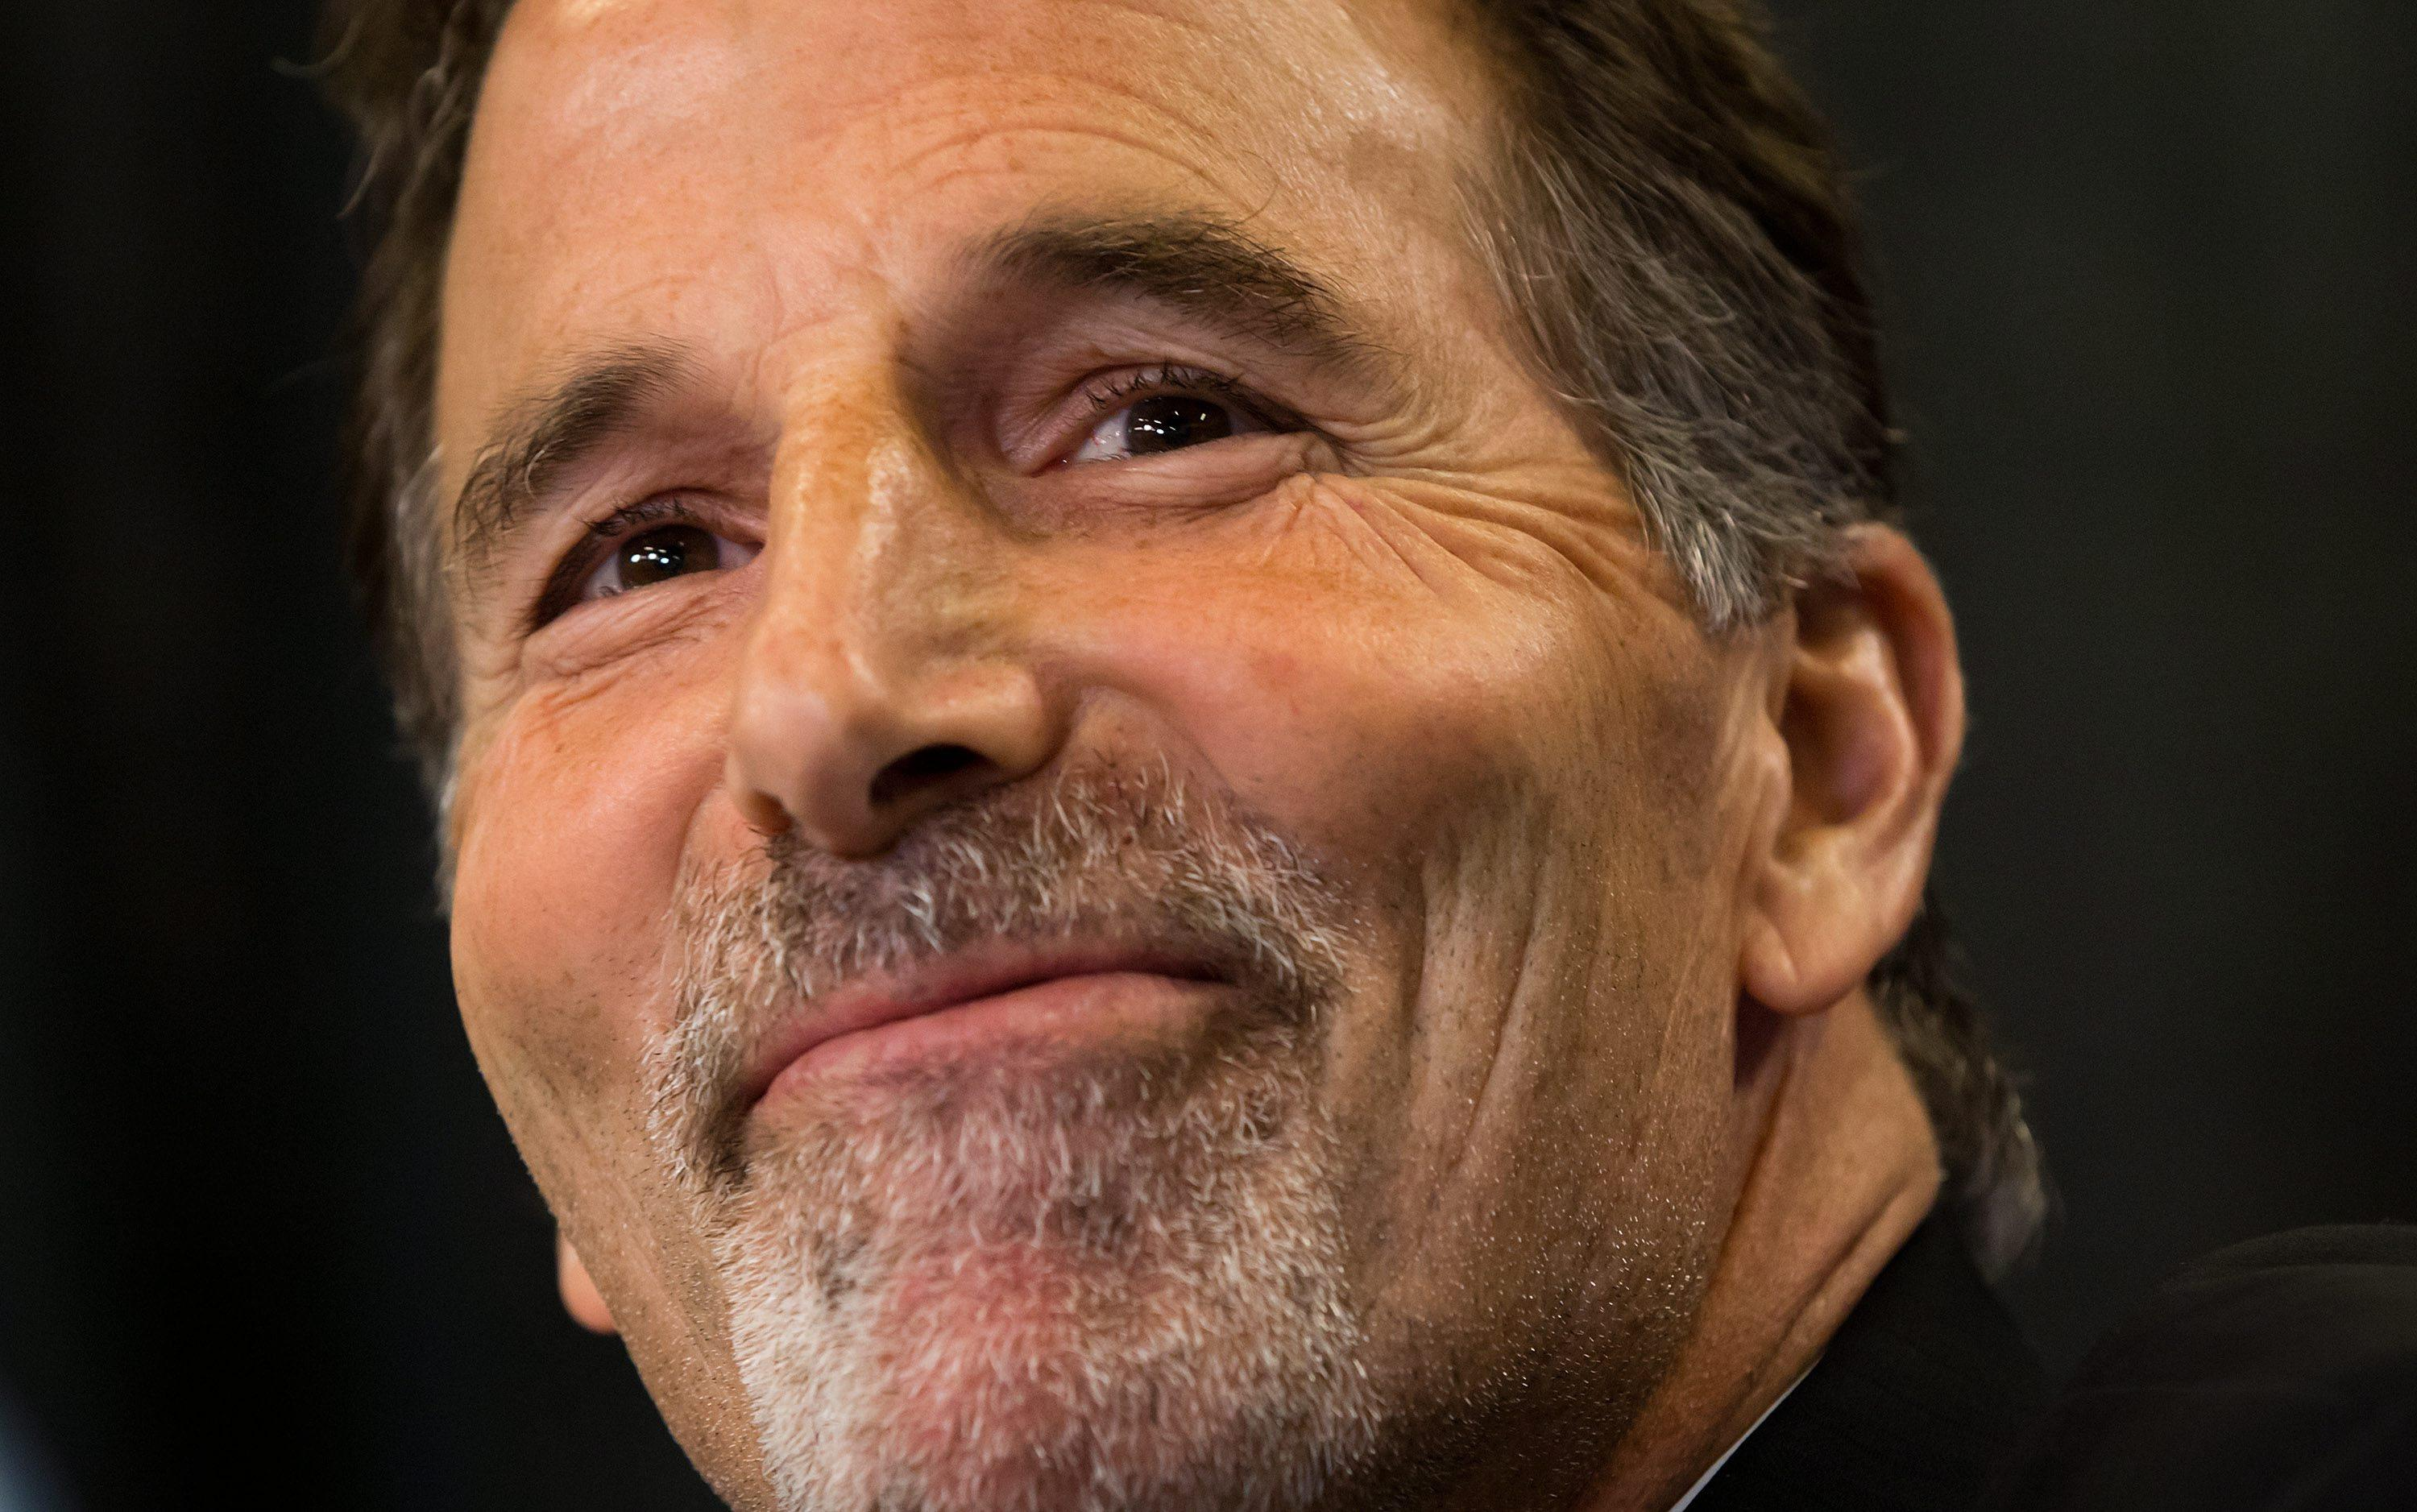 Vancouver Canucks new head coach John Tortorella smiles during an NHL hockey news conference announcing his hiring in Vancouver, British Columbia, on Tuesday June 25, 2013. (AP Photo/The Canadian Press, Darryl Dyck)